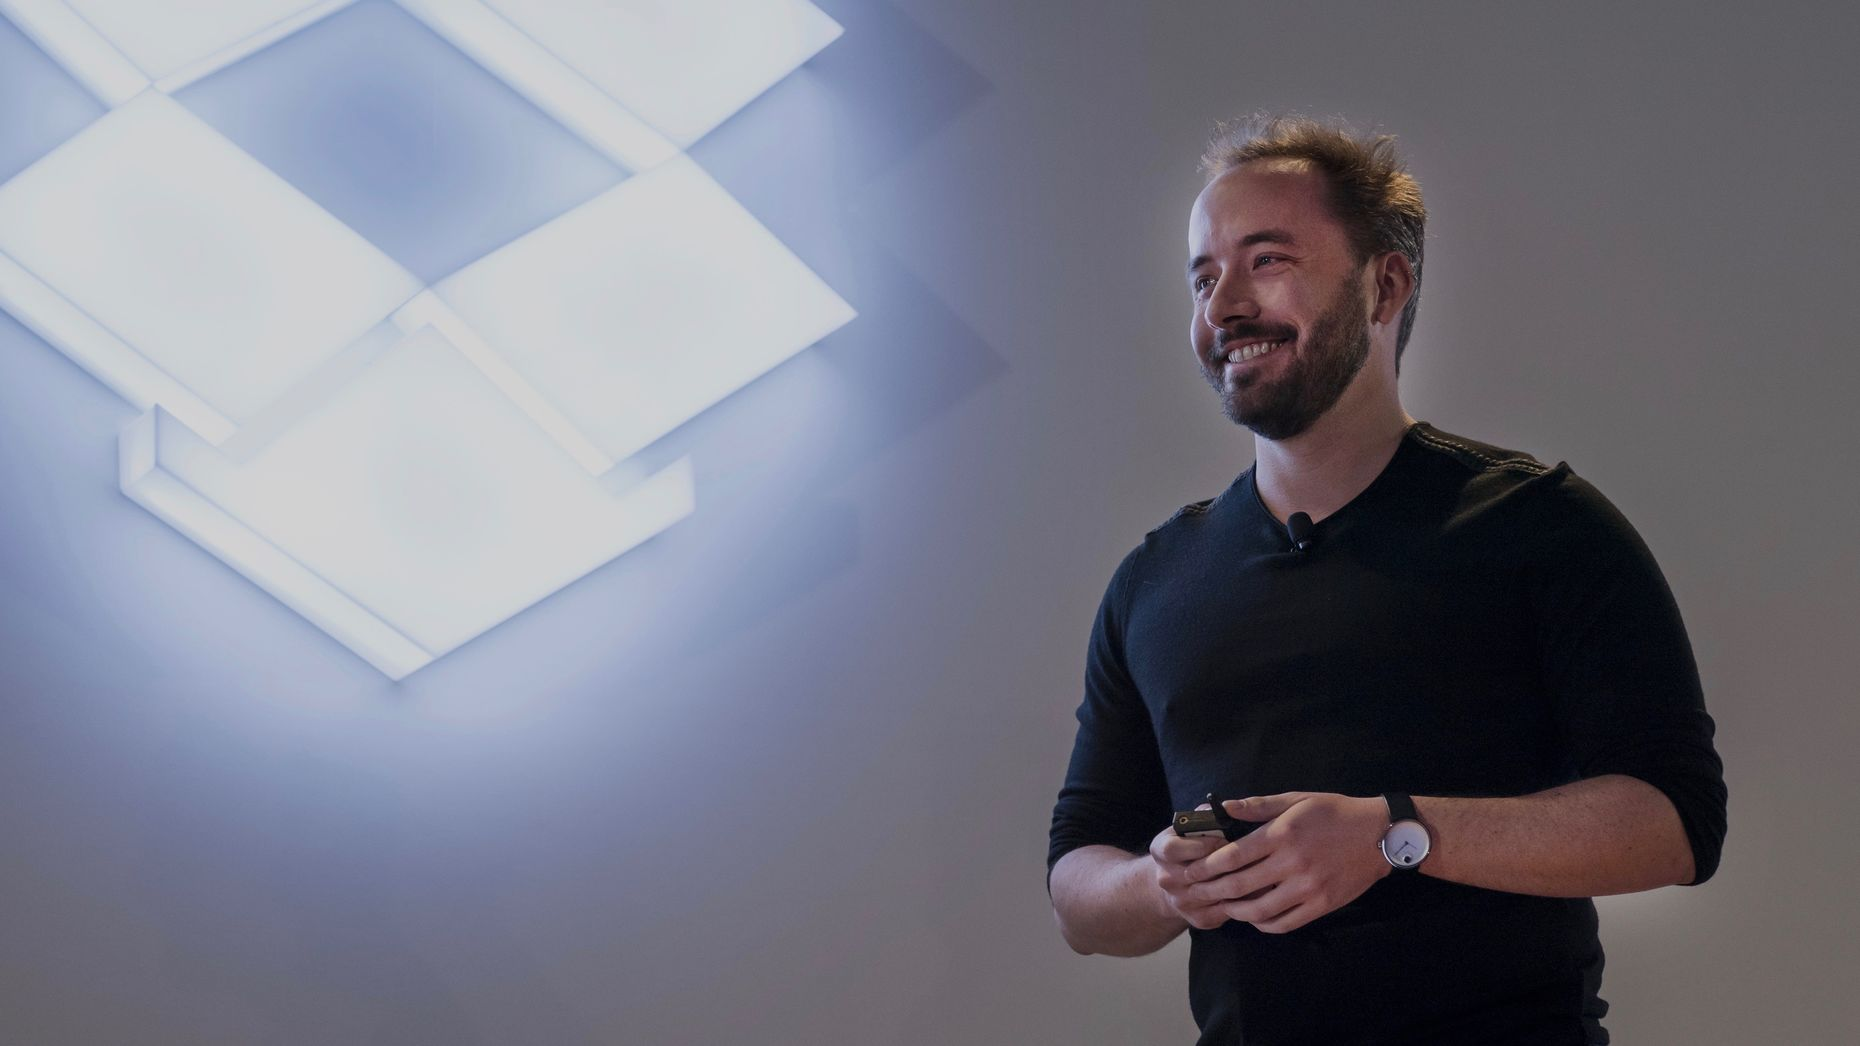 Dropbox CEO Drew Houston. Photo by Bloomberg.